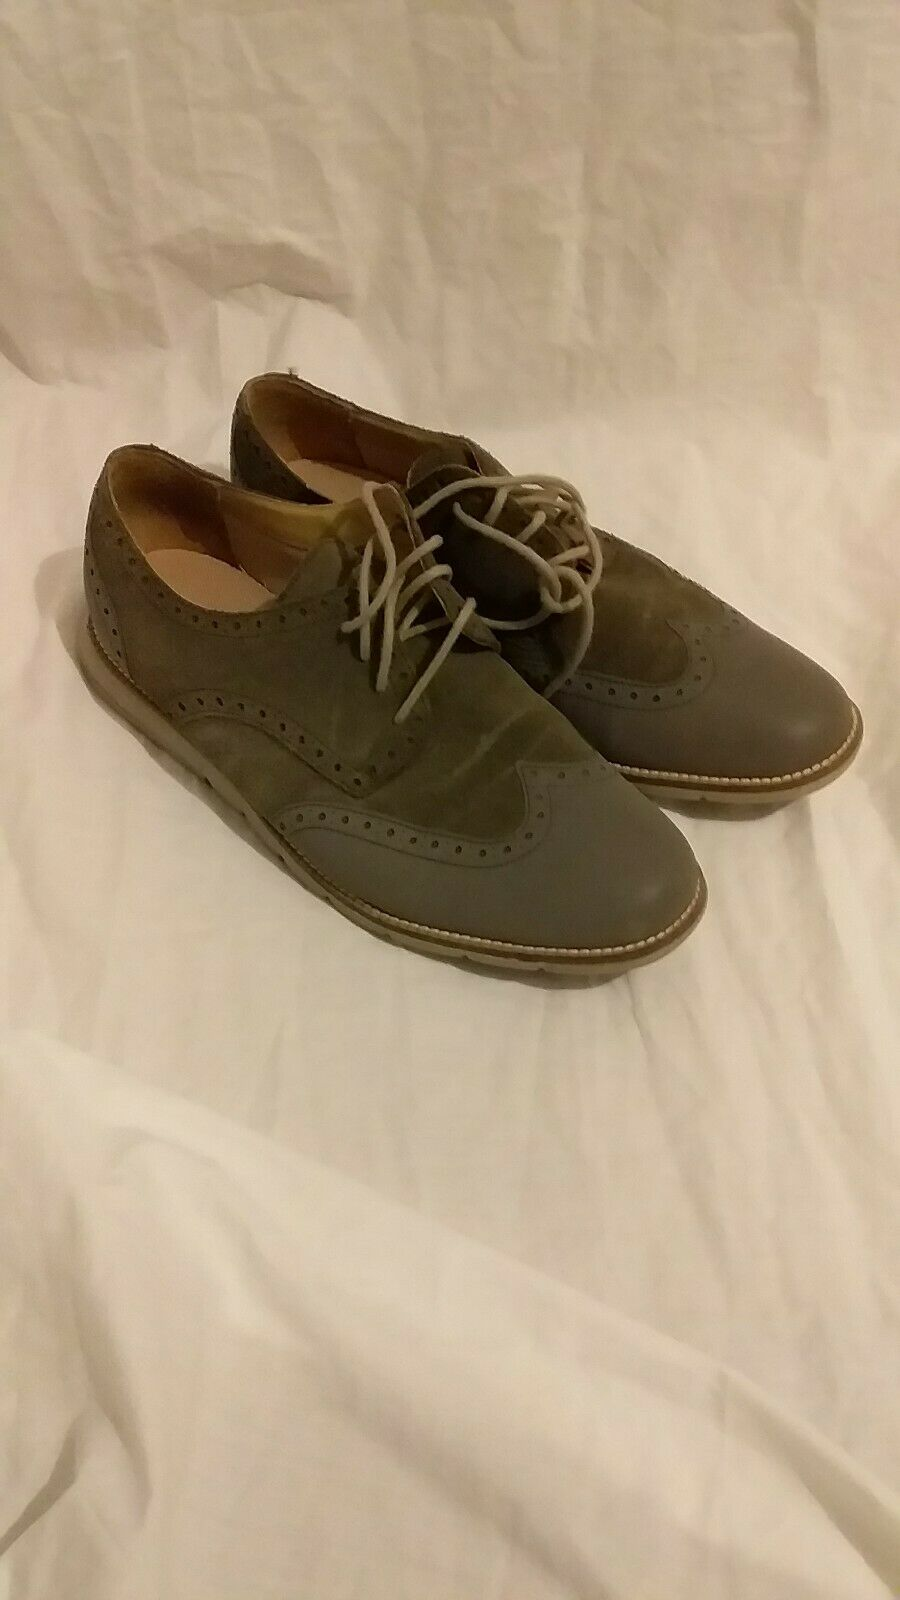 Colehaan grand OS grey suede brogues size 9.5 US